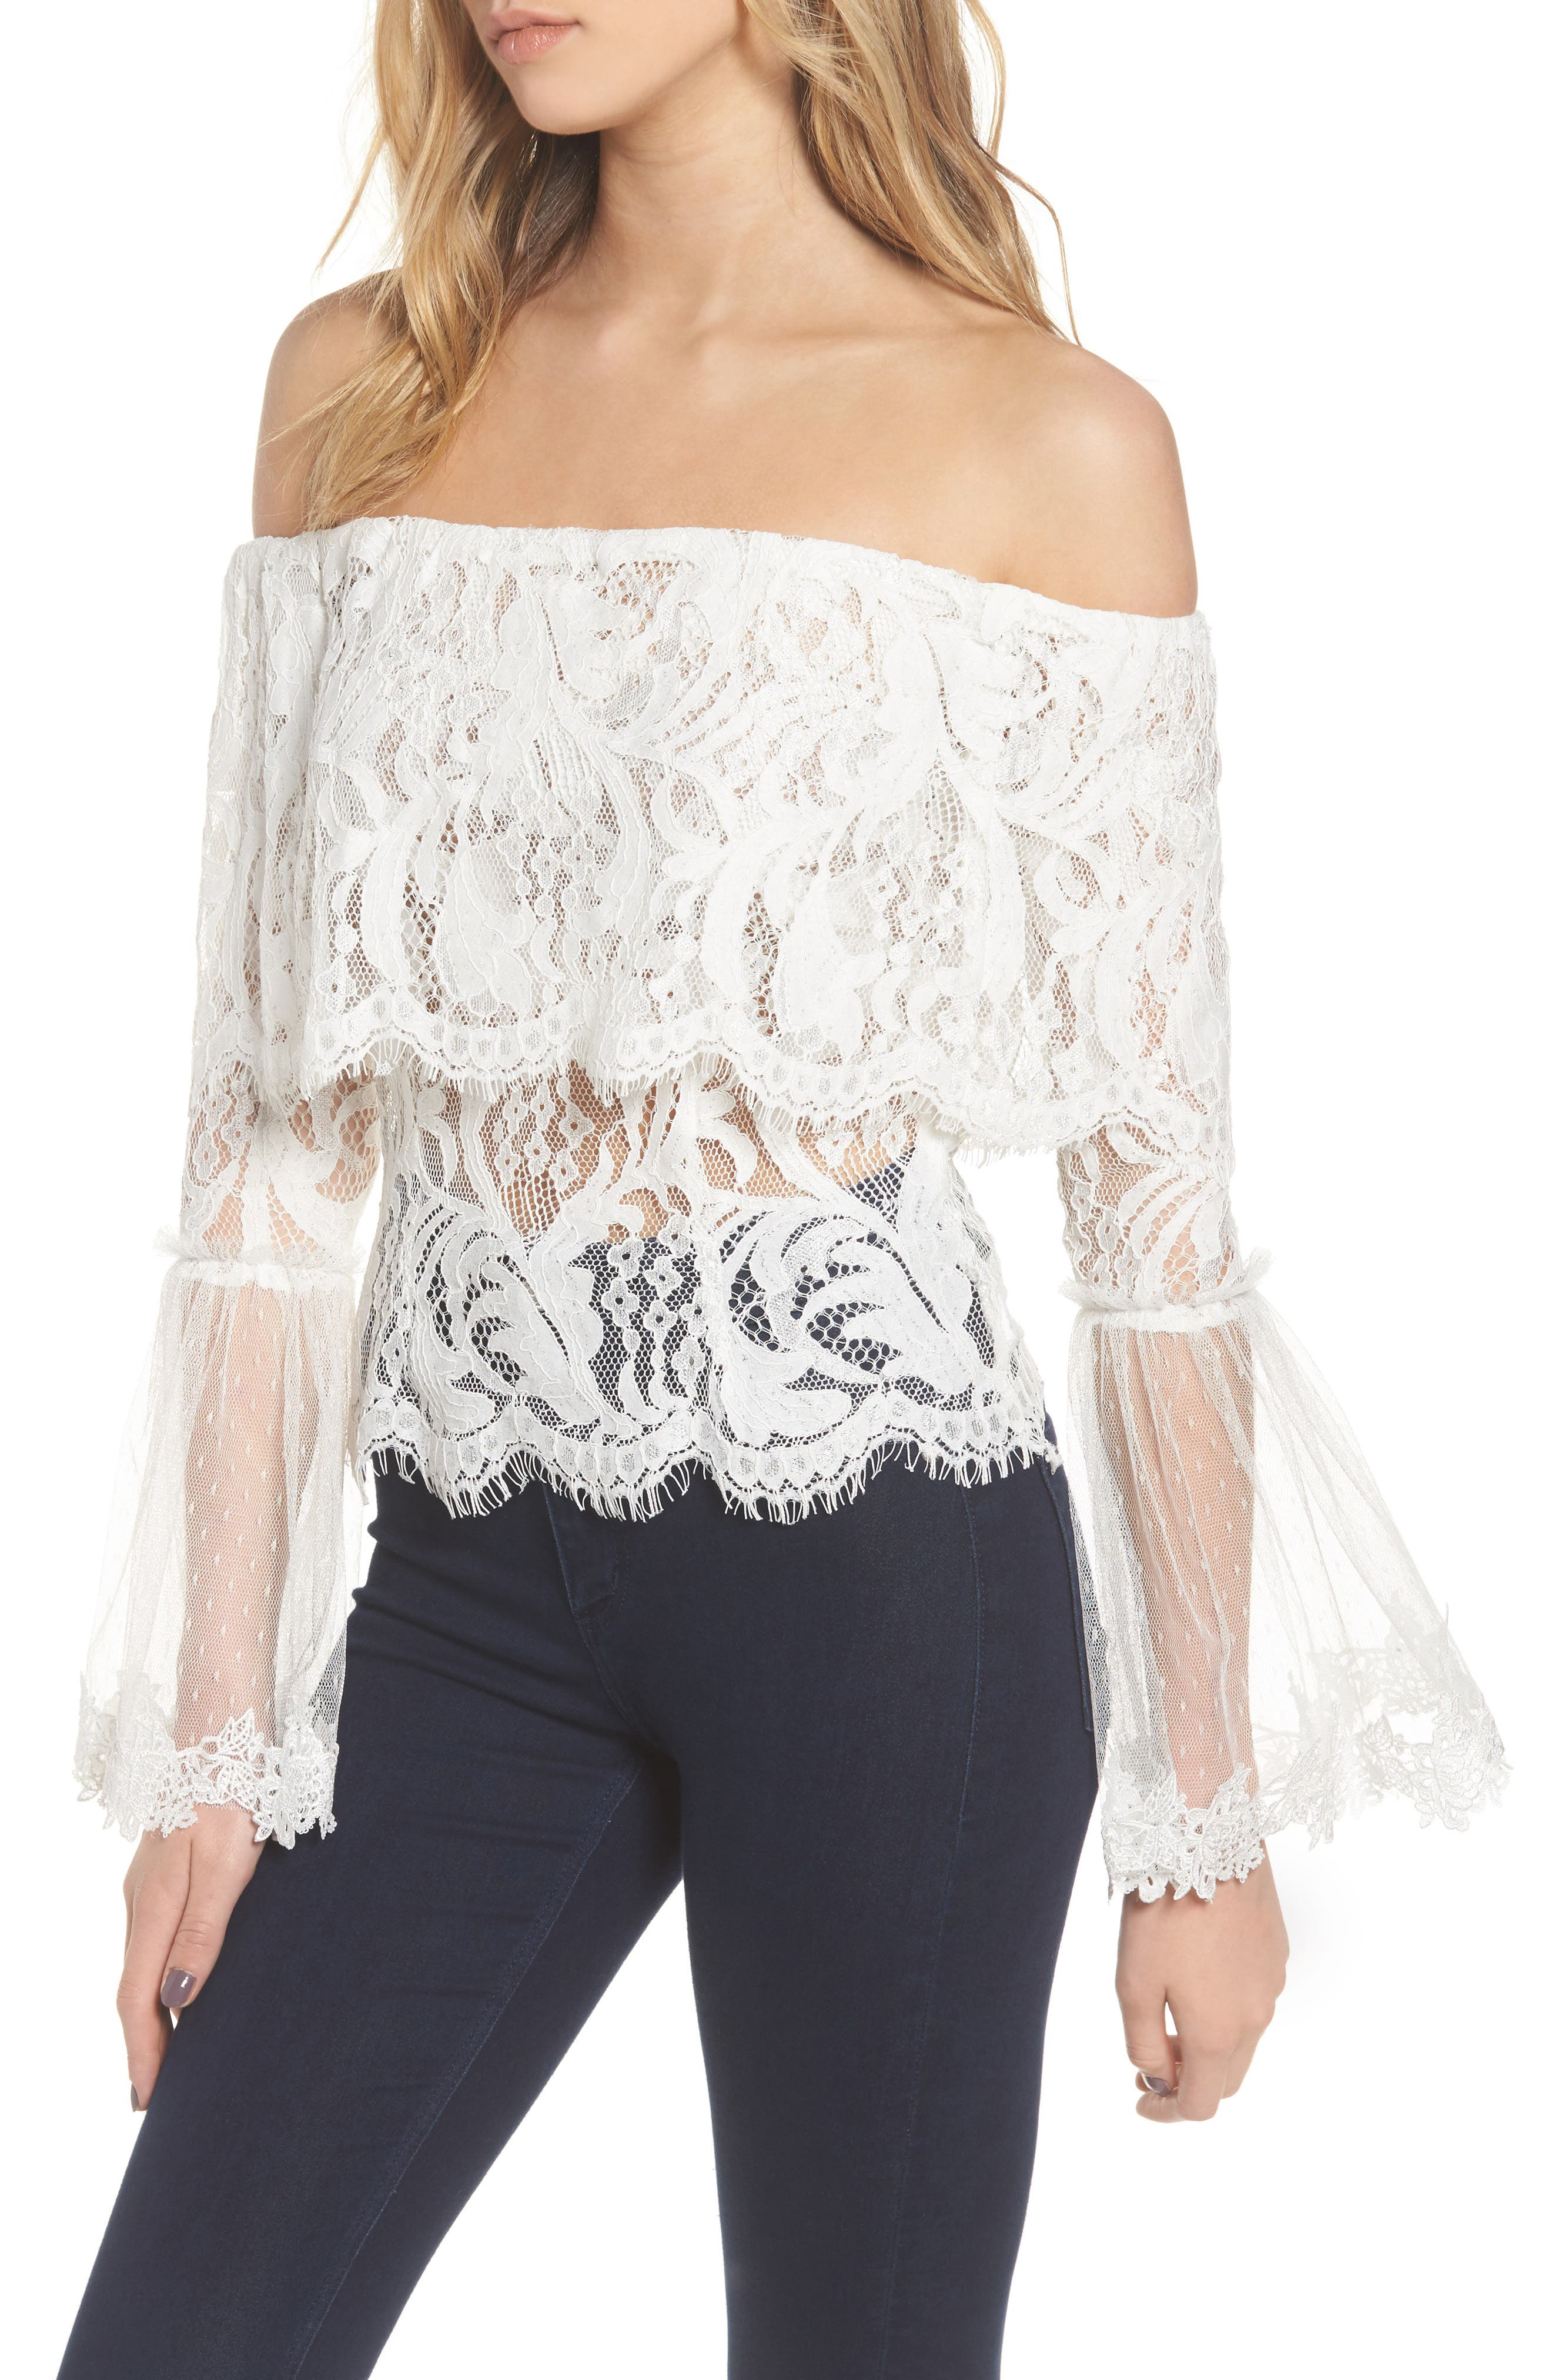 If You Dare Lace Off the Shoulder Blouse,                         Main,                         color, Ivory